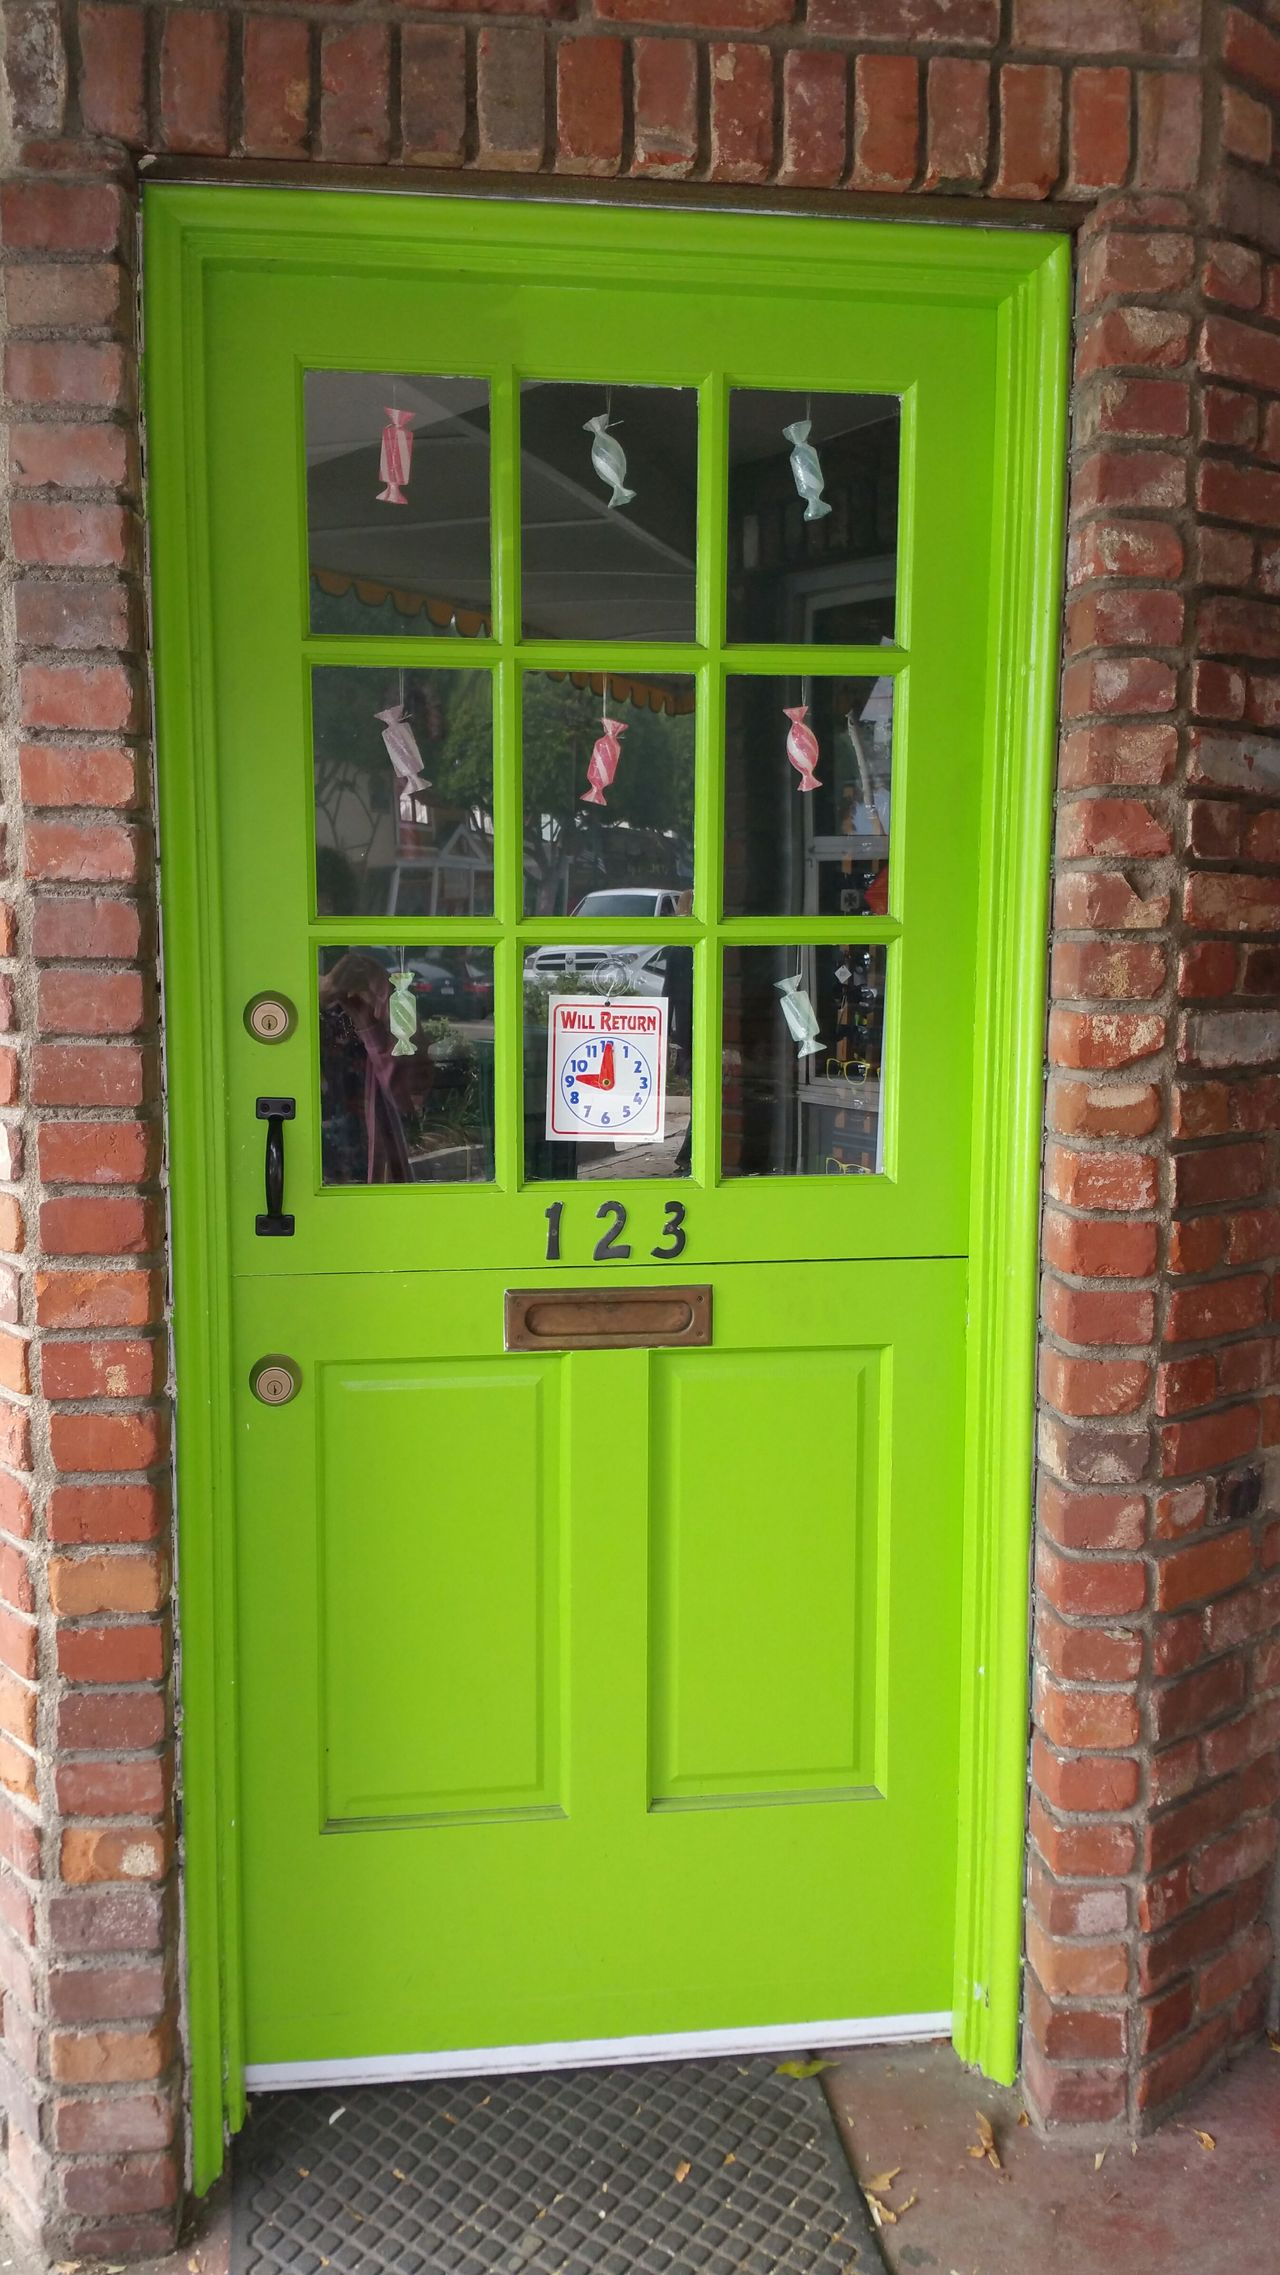 Green Door Brick Street Photography Interesting Pattern, Texture, Shape And Form Pattern Discovering Walking Around Day In Beach Town Enjoying Life Fun Sweets Sweets In Window Advertising Cute Showcase: February Surf's Up Sea